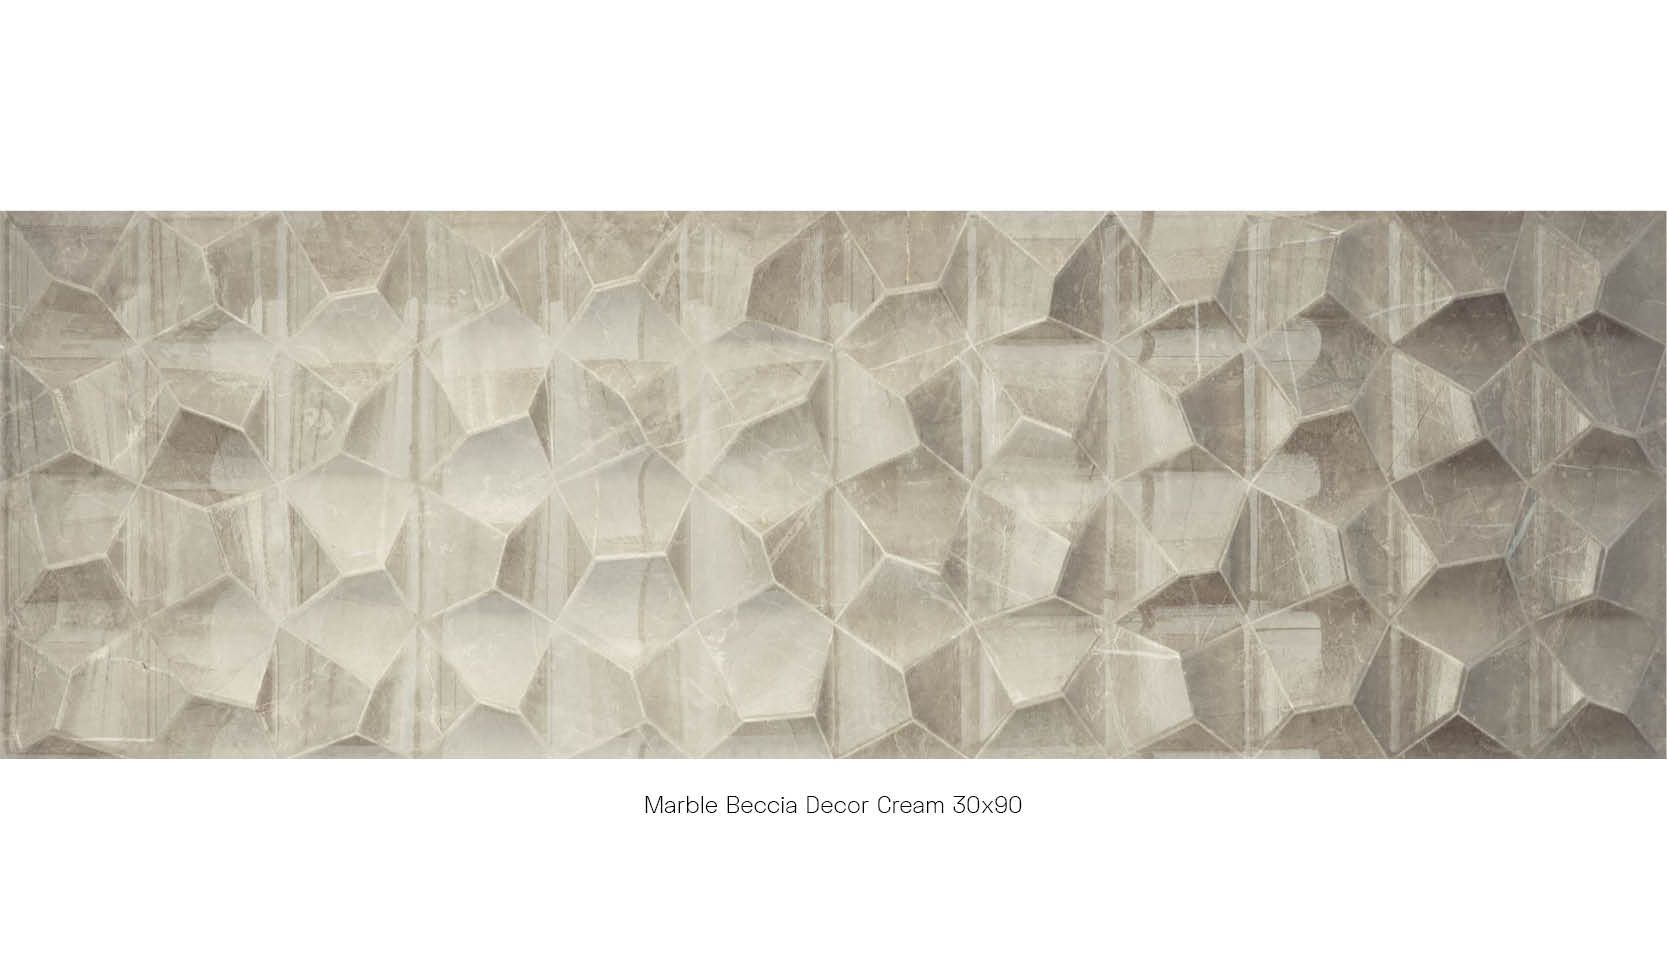 Marble beccia decor cream 30 x 90